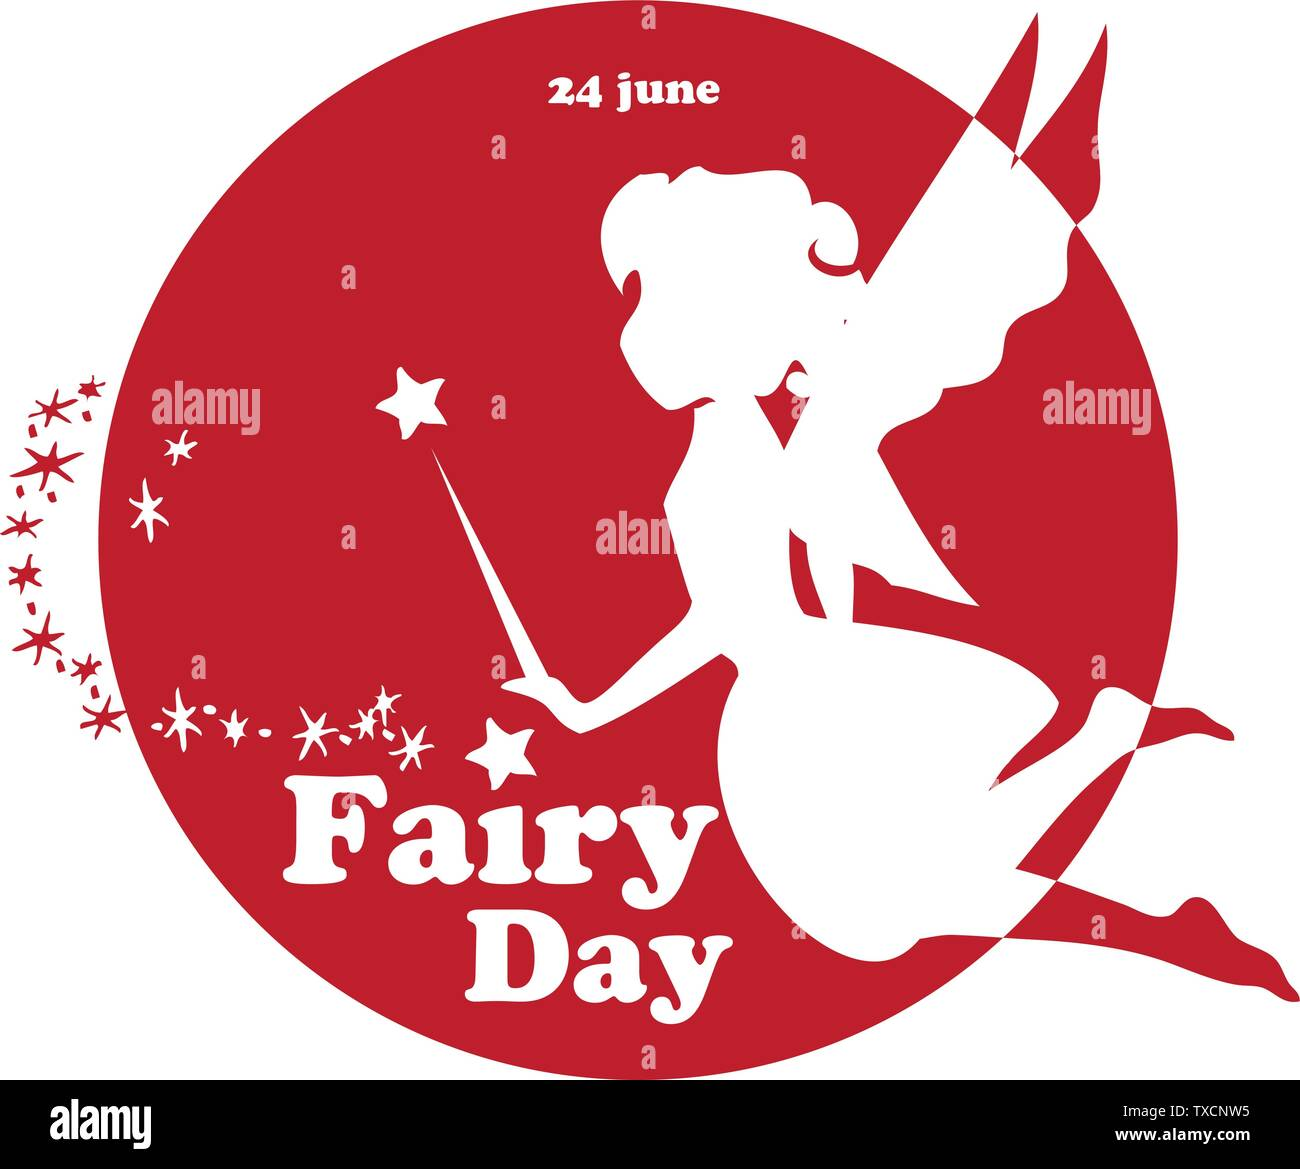 Label for Fairy Day. The holiday is celebrated on June 24 - Stock Vector